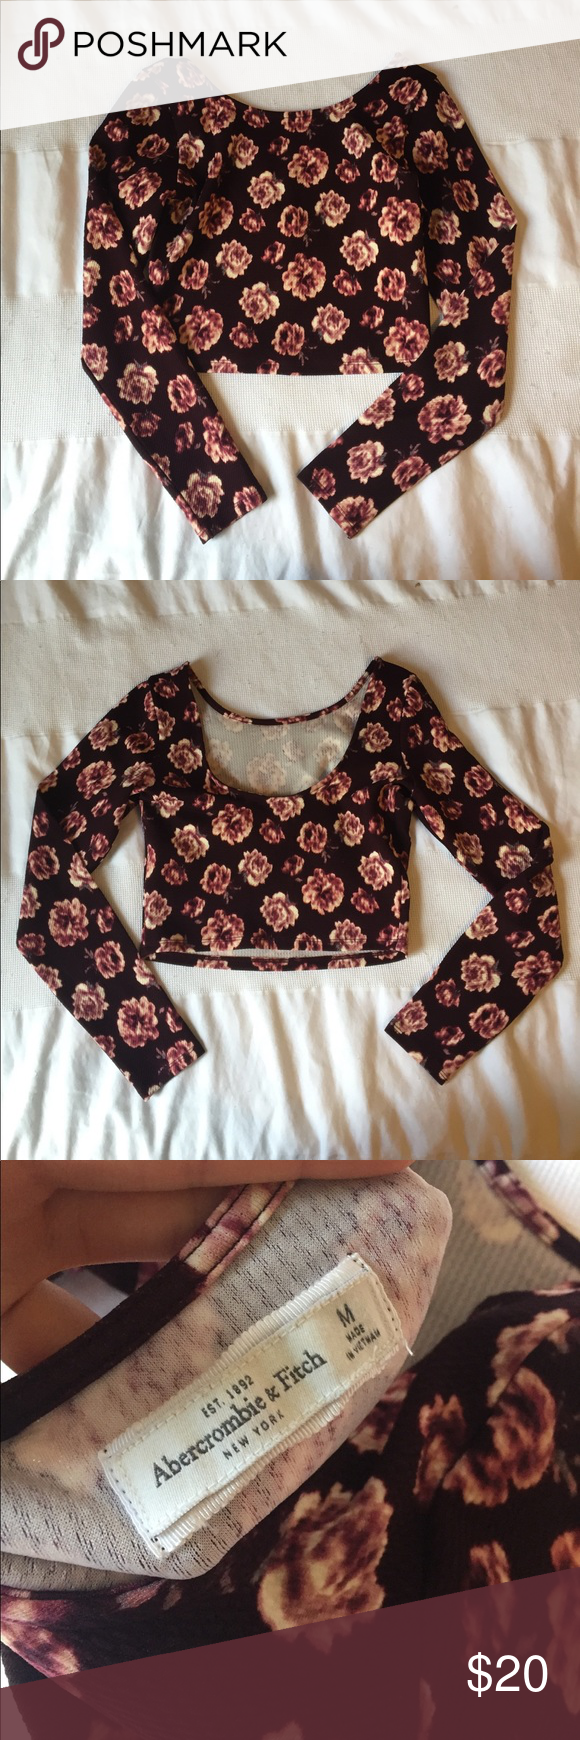 Cute Abercrombie Crop Top NWOT!! Burgundy crop top in size medium. Never worn and in perfect condition!!! Abercrombie & Fitch Tops Crop Tops